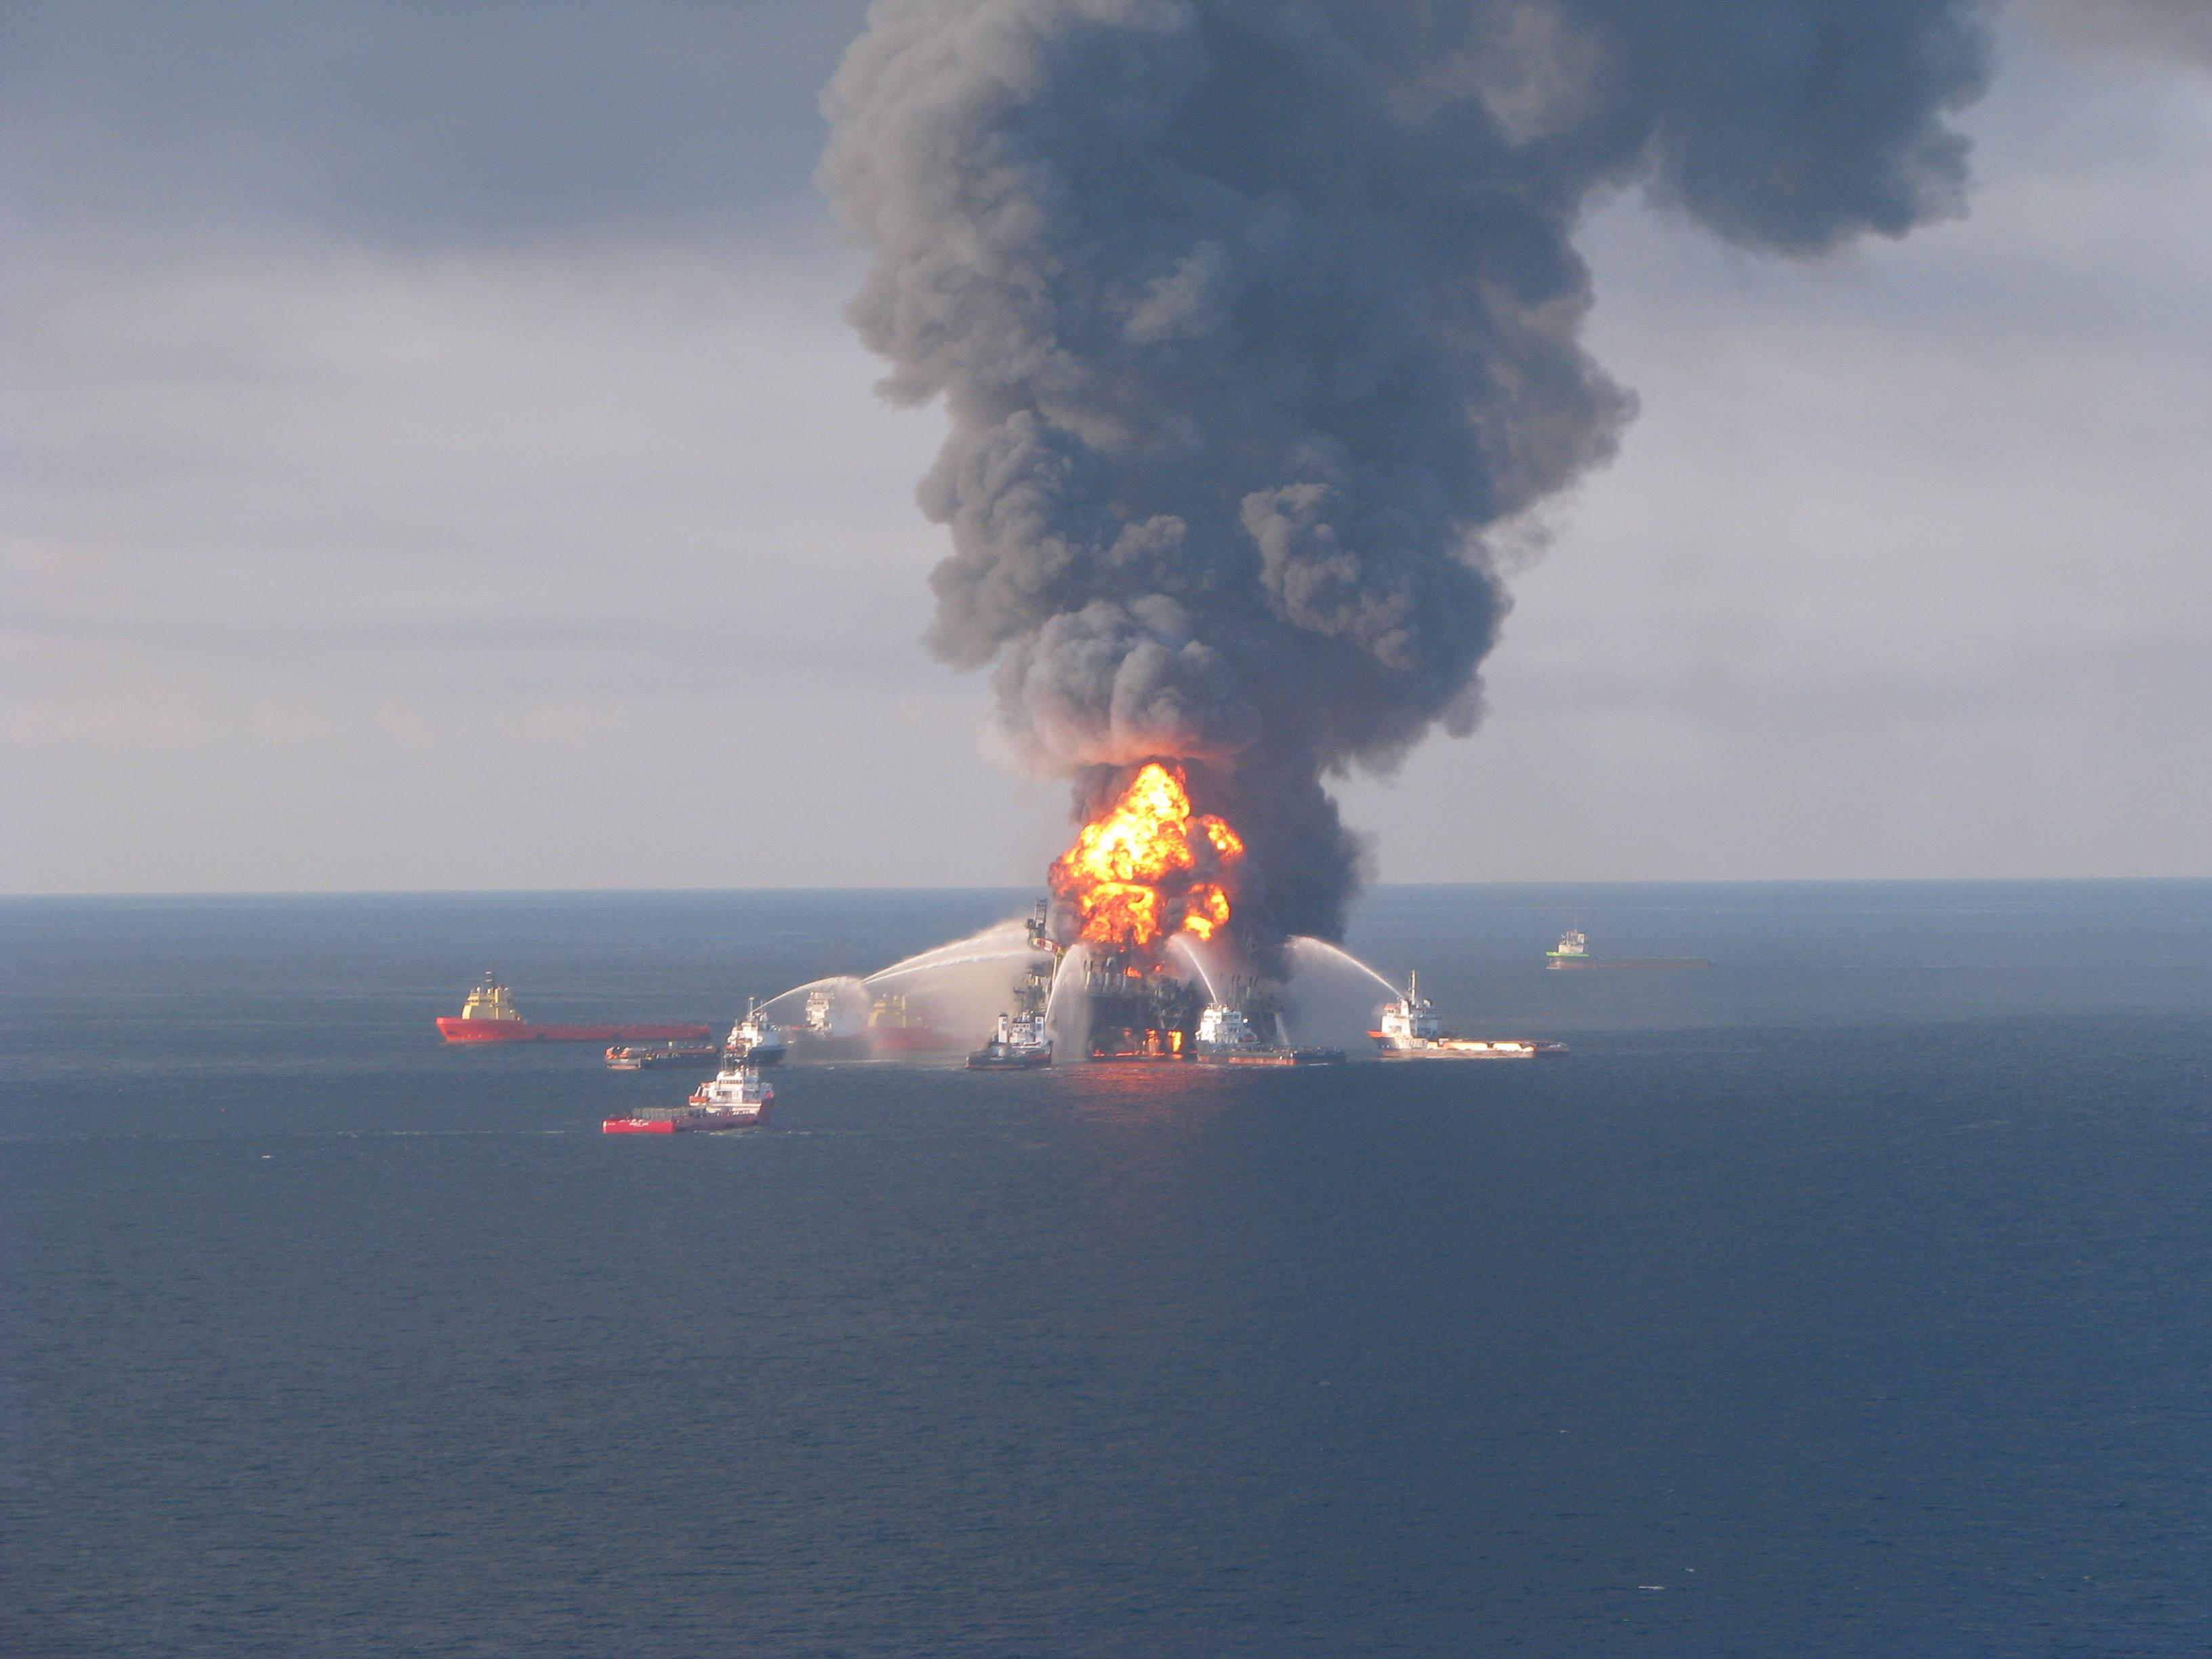 Fire fighting ships surround the burning Deepwater Horizon oil rig, shooting water at it to put out the flames.<div class='credit'><strong>Credit:</strong> Fire fighting ships surround the burning Deepwater Horizon oil rig, shooting water at it to put out the flames.</div>